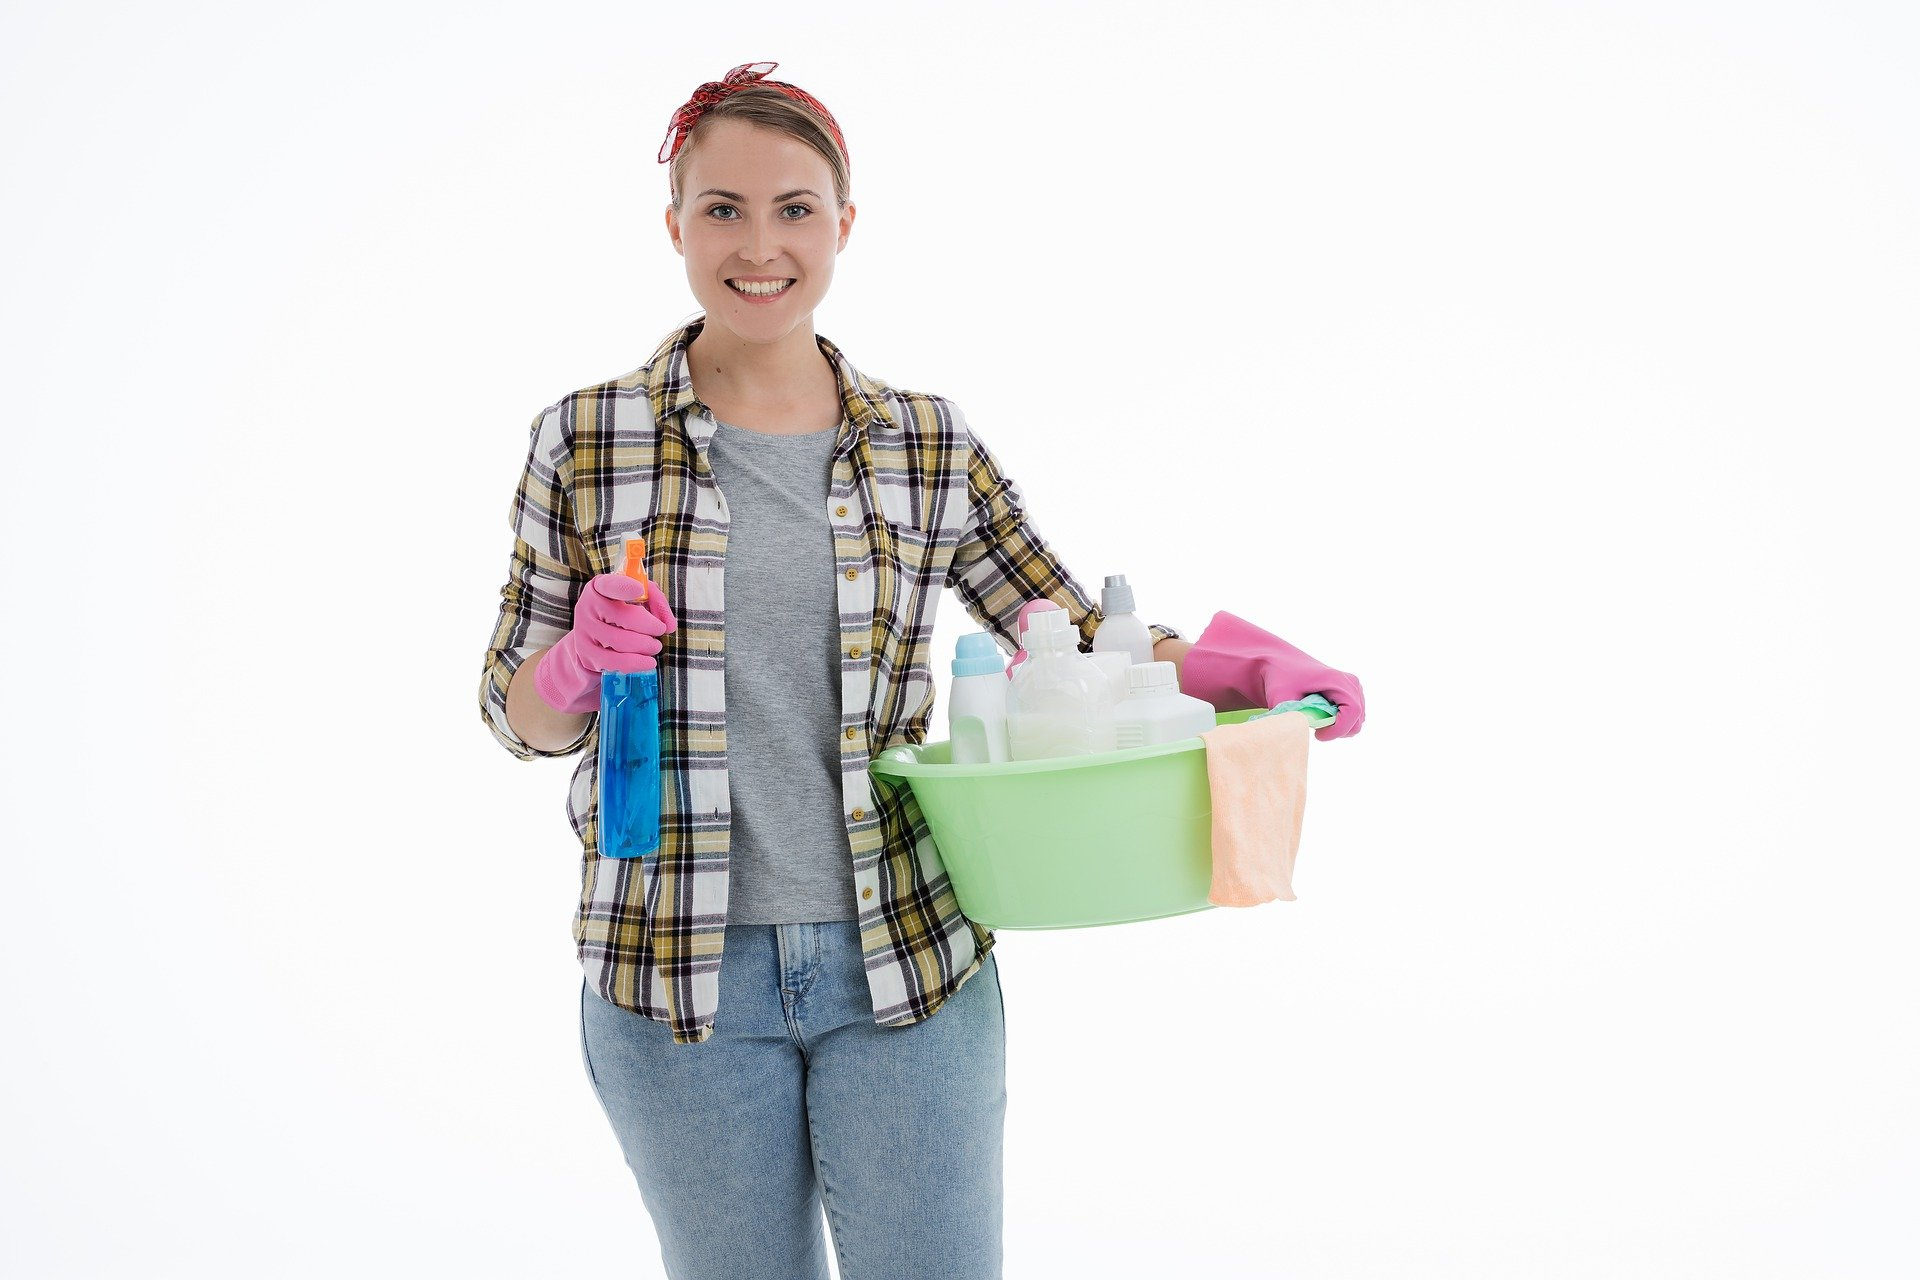 west island cleaning services